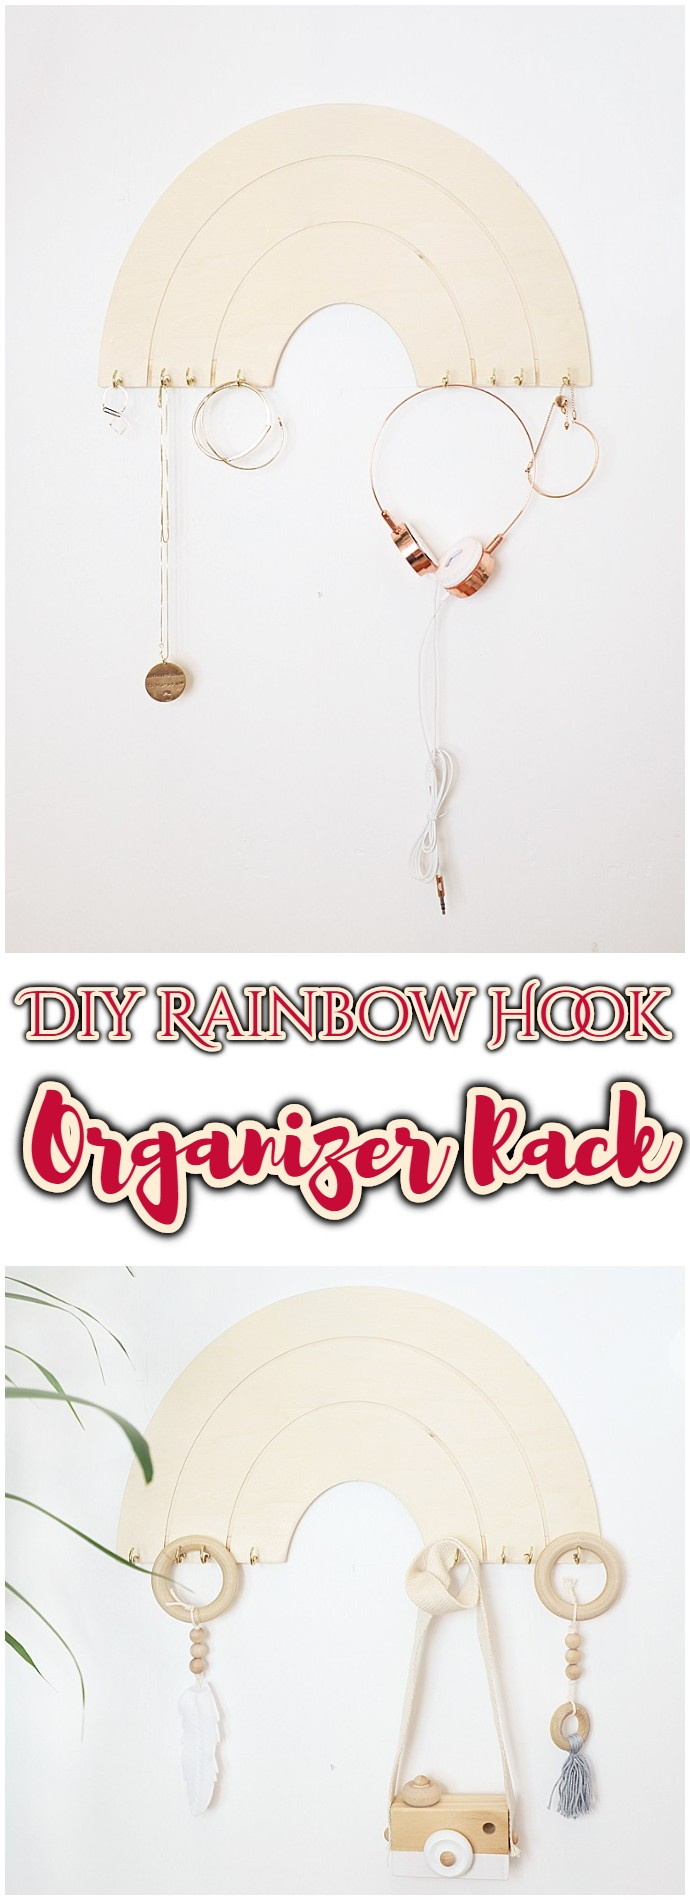 Diy Rainbow Hook Organizer Rack